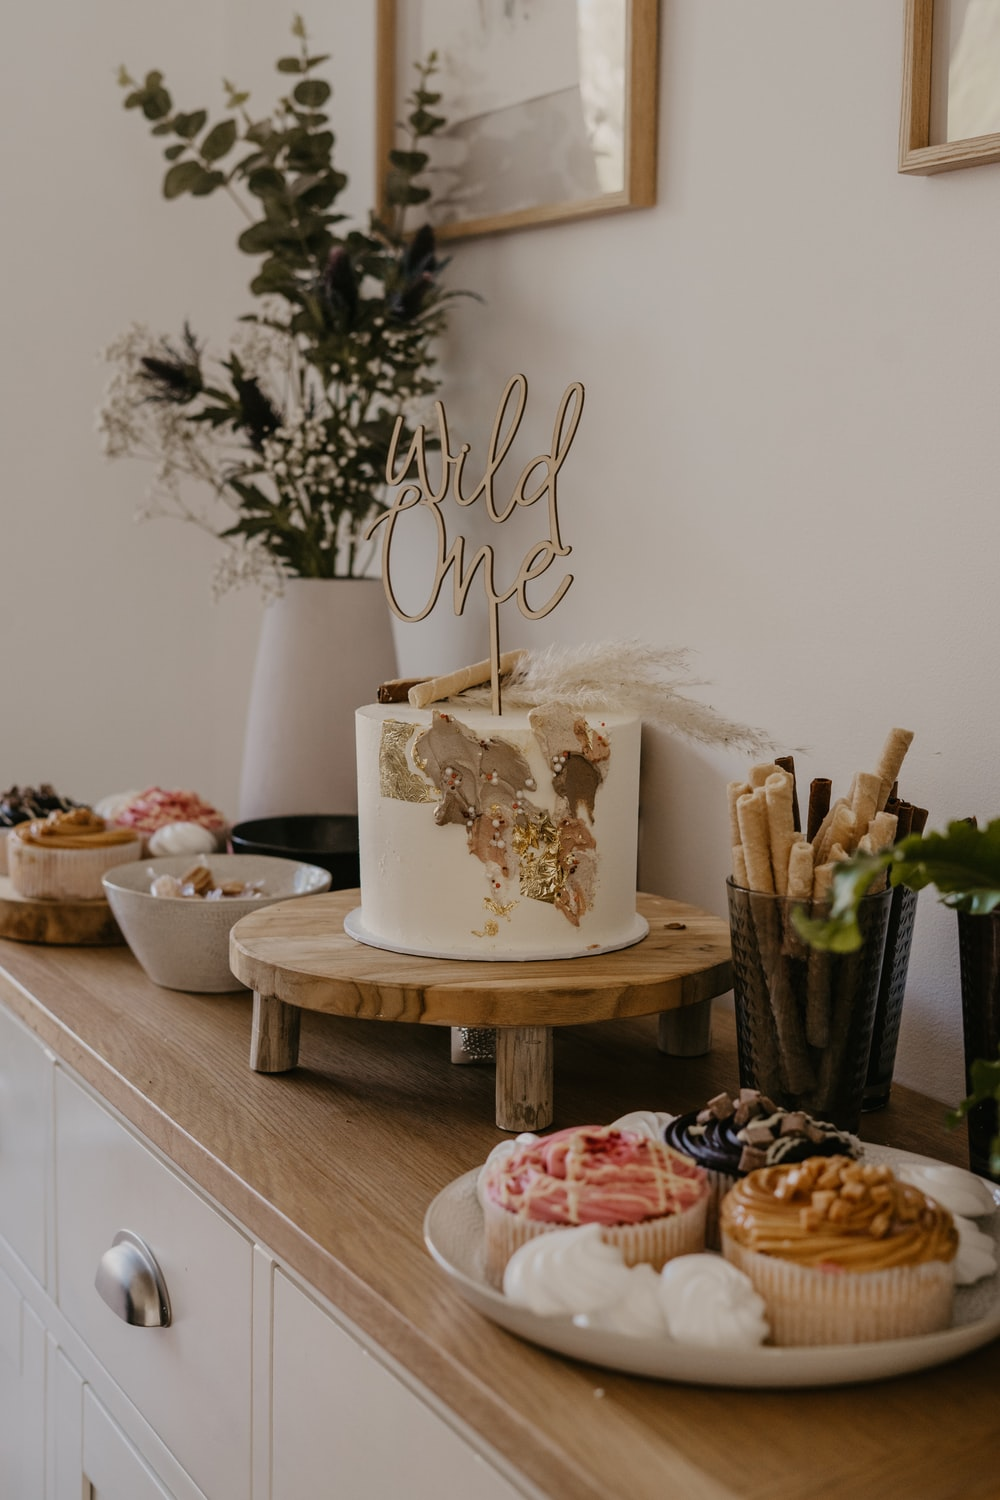 white and brown cake on brown wooden table